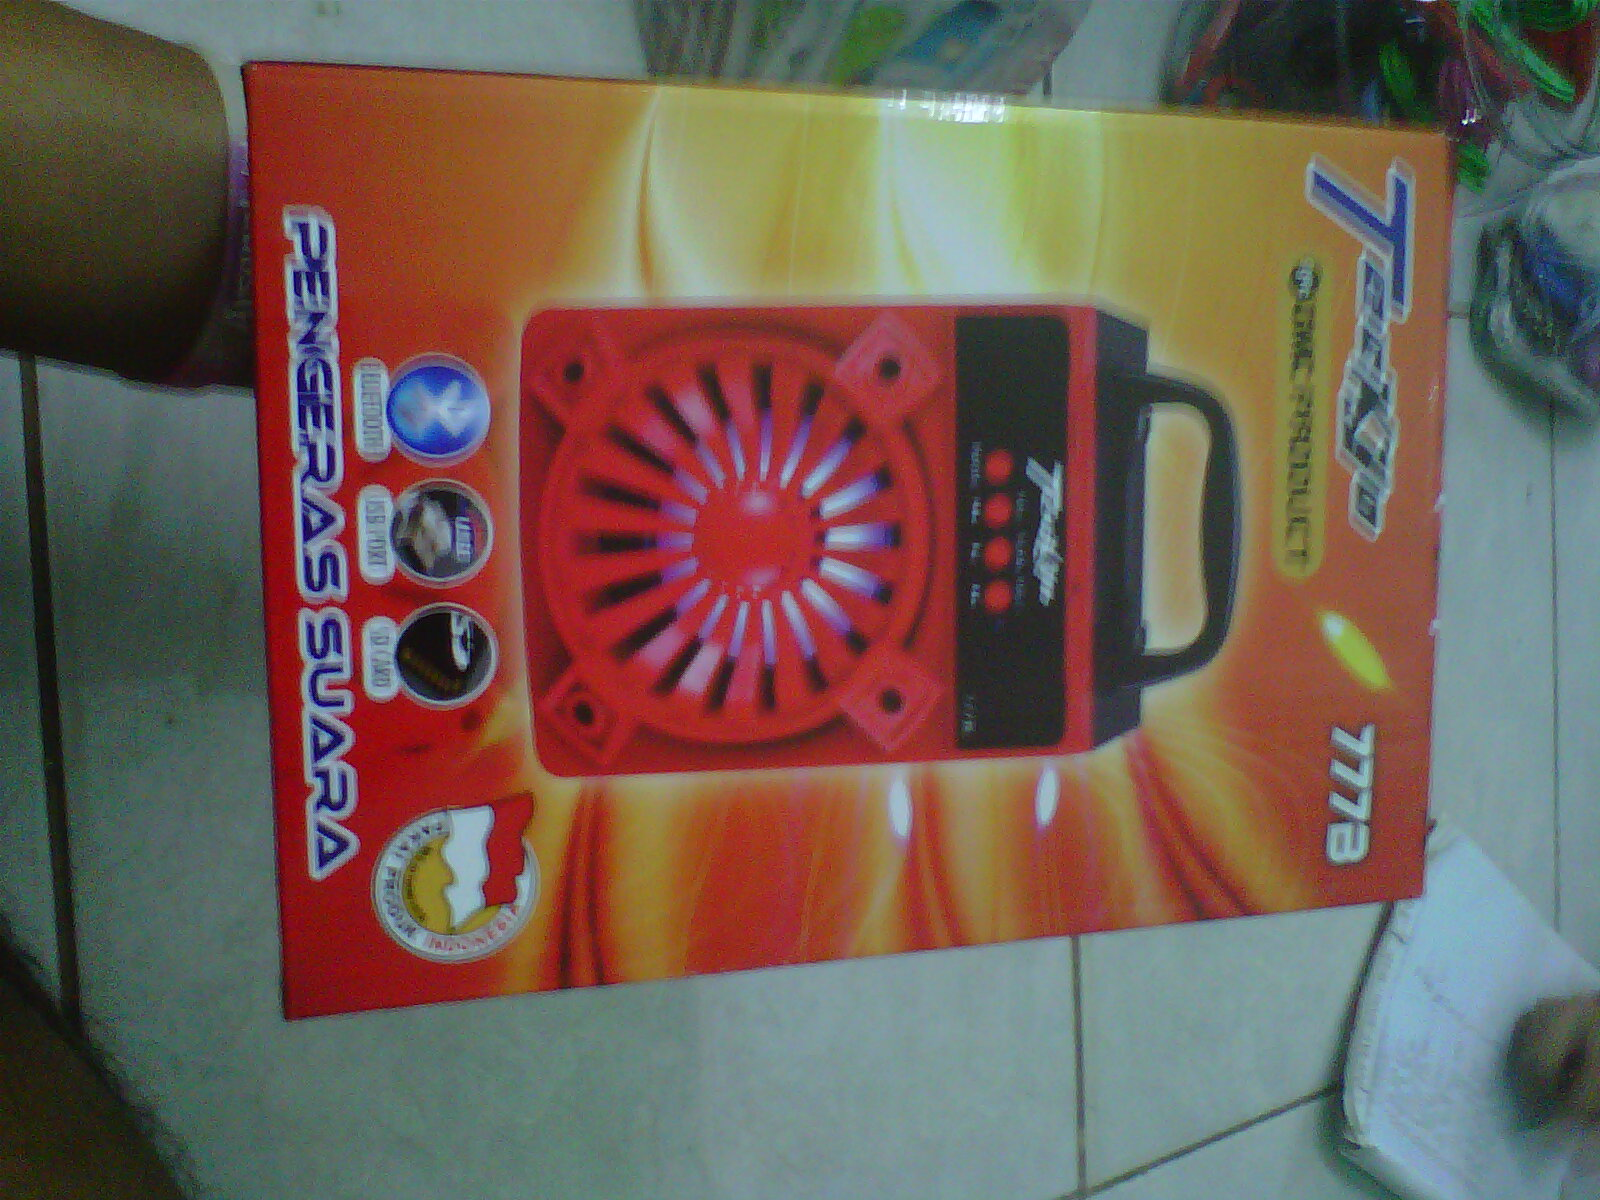 Jual Speaker Teckyo Gmc Bluetooth 777B Speaker Usb Bluetooth Stereo Bass KONGHAI ACC .